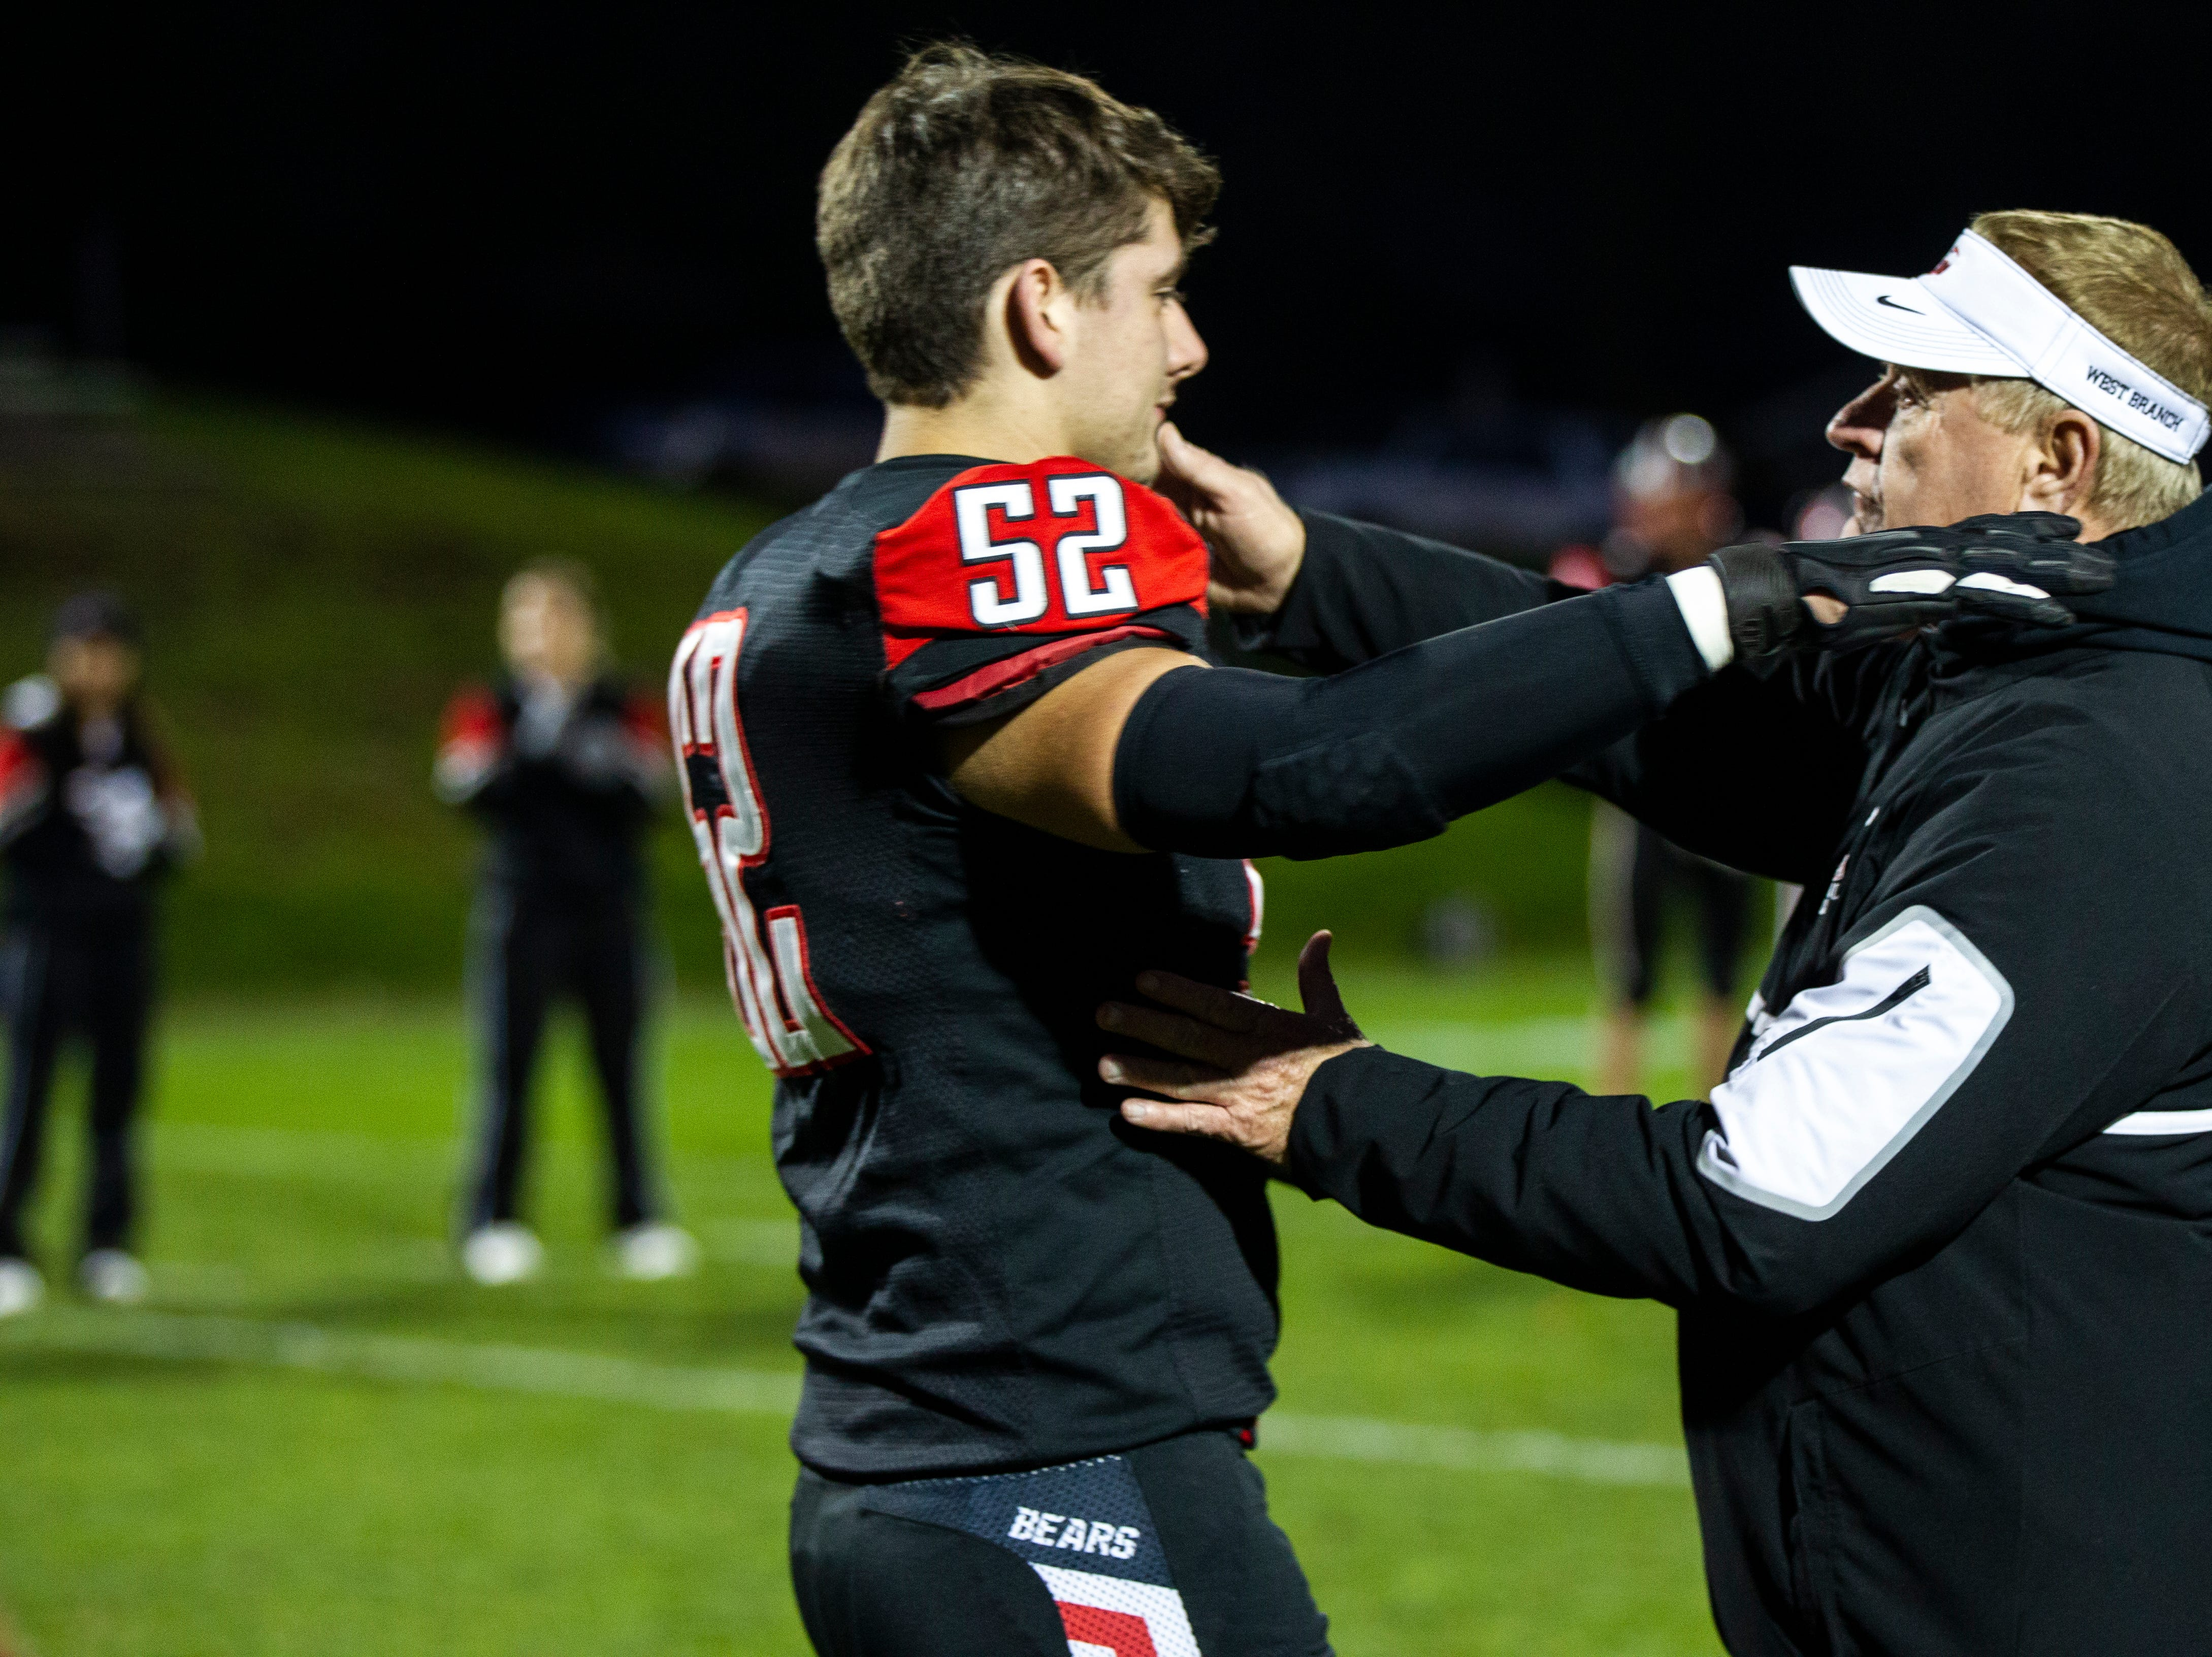 West Branch football head coach Butch Pedersen embraces senior lineman Jaden Hierseman (52) before a Class A varsity football game on Friday, Oct. 12, 2018, at the Little Rose Bowl in West Branch, Iowa.